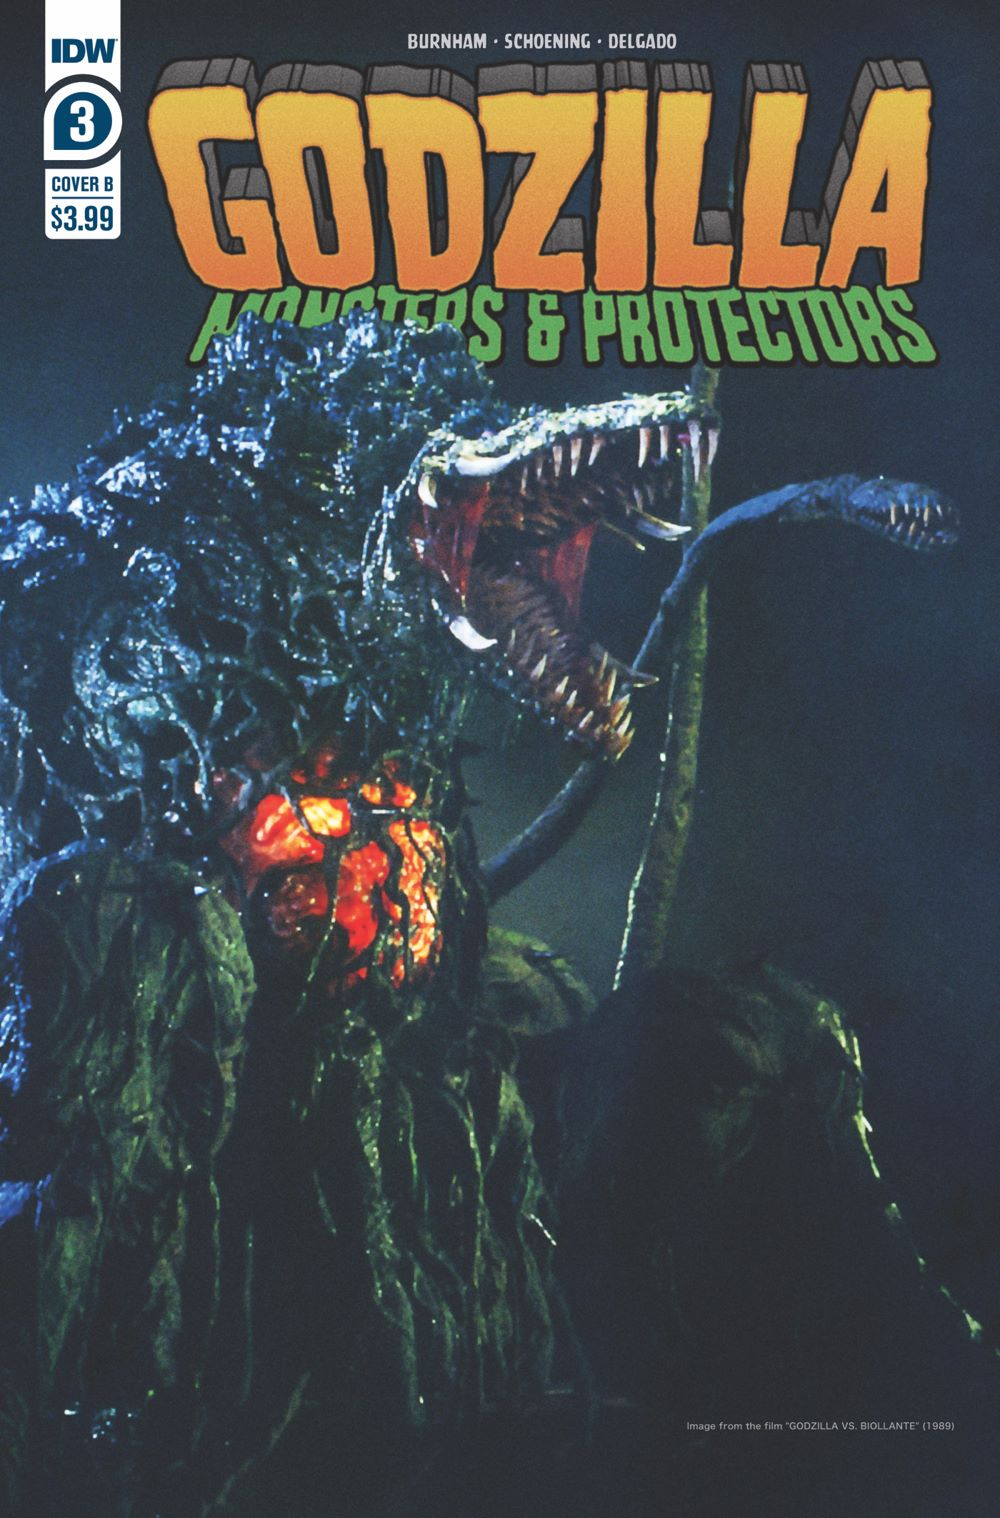 Godzilla_MP03-coverB ComicList: IDW Publishing New Releases for 06/16/2021